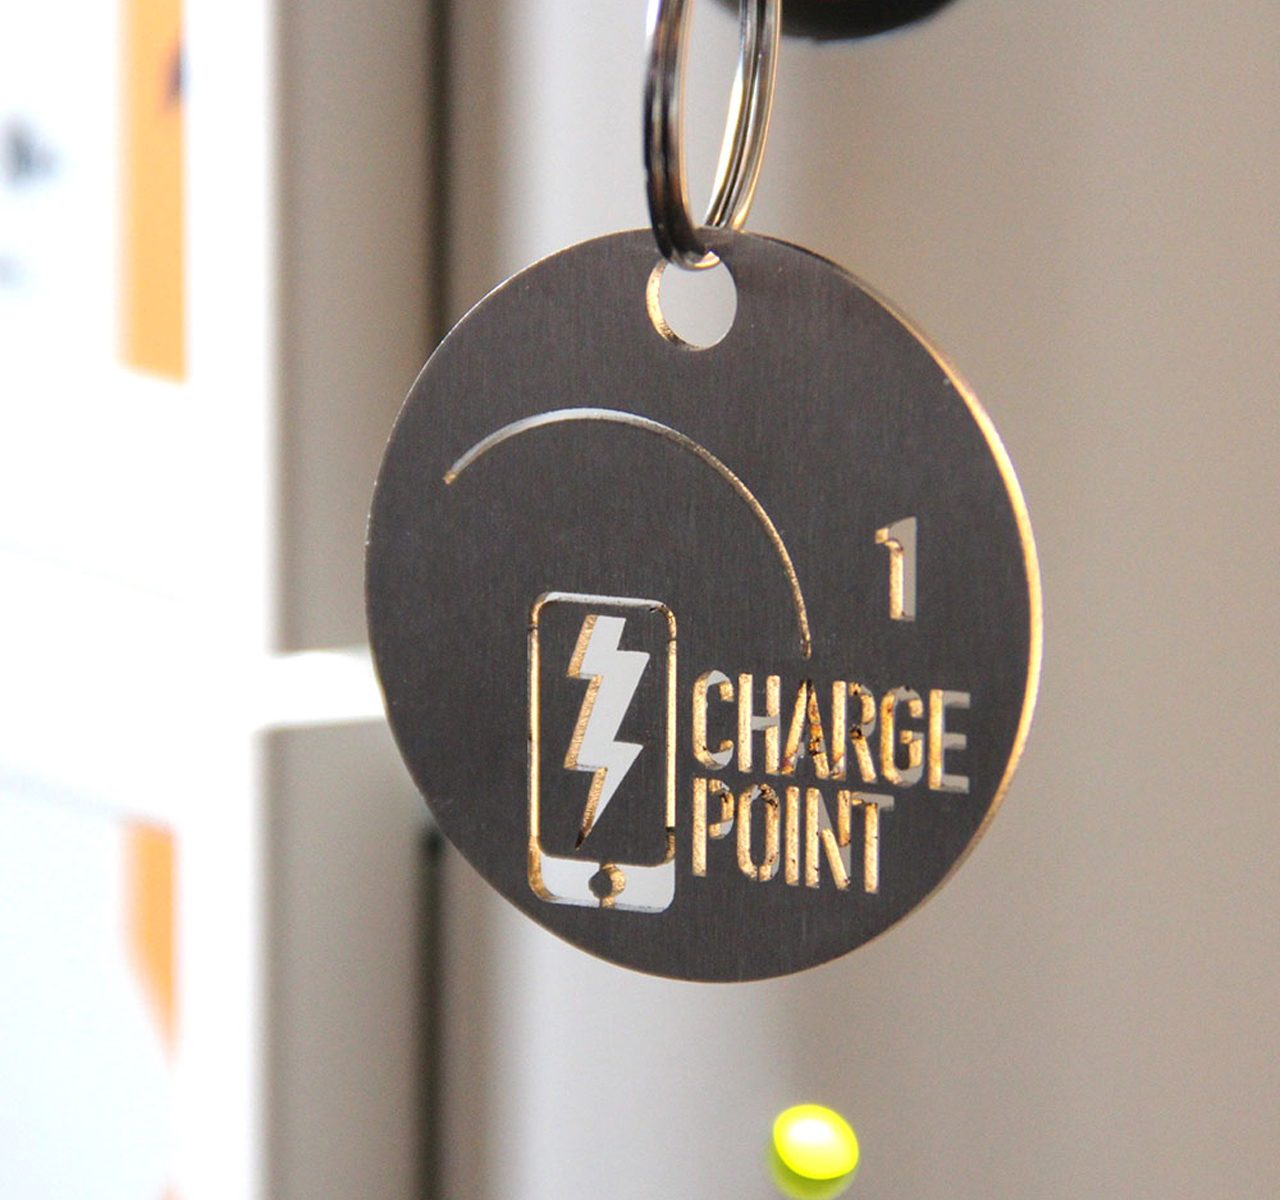 https://www.chargepoint.co.uk/wp-content/uploads/2019/03/Keyfob-1280x1200.jpg